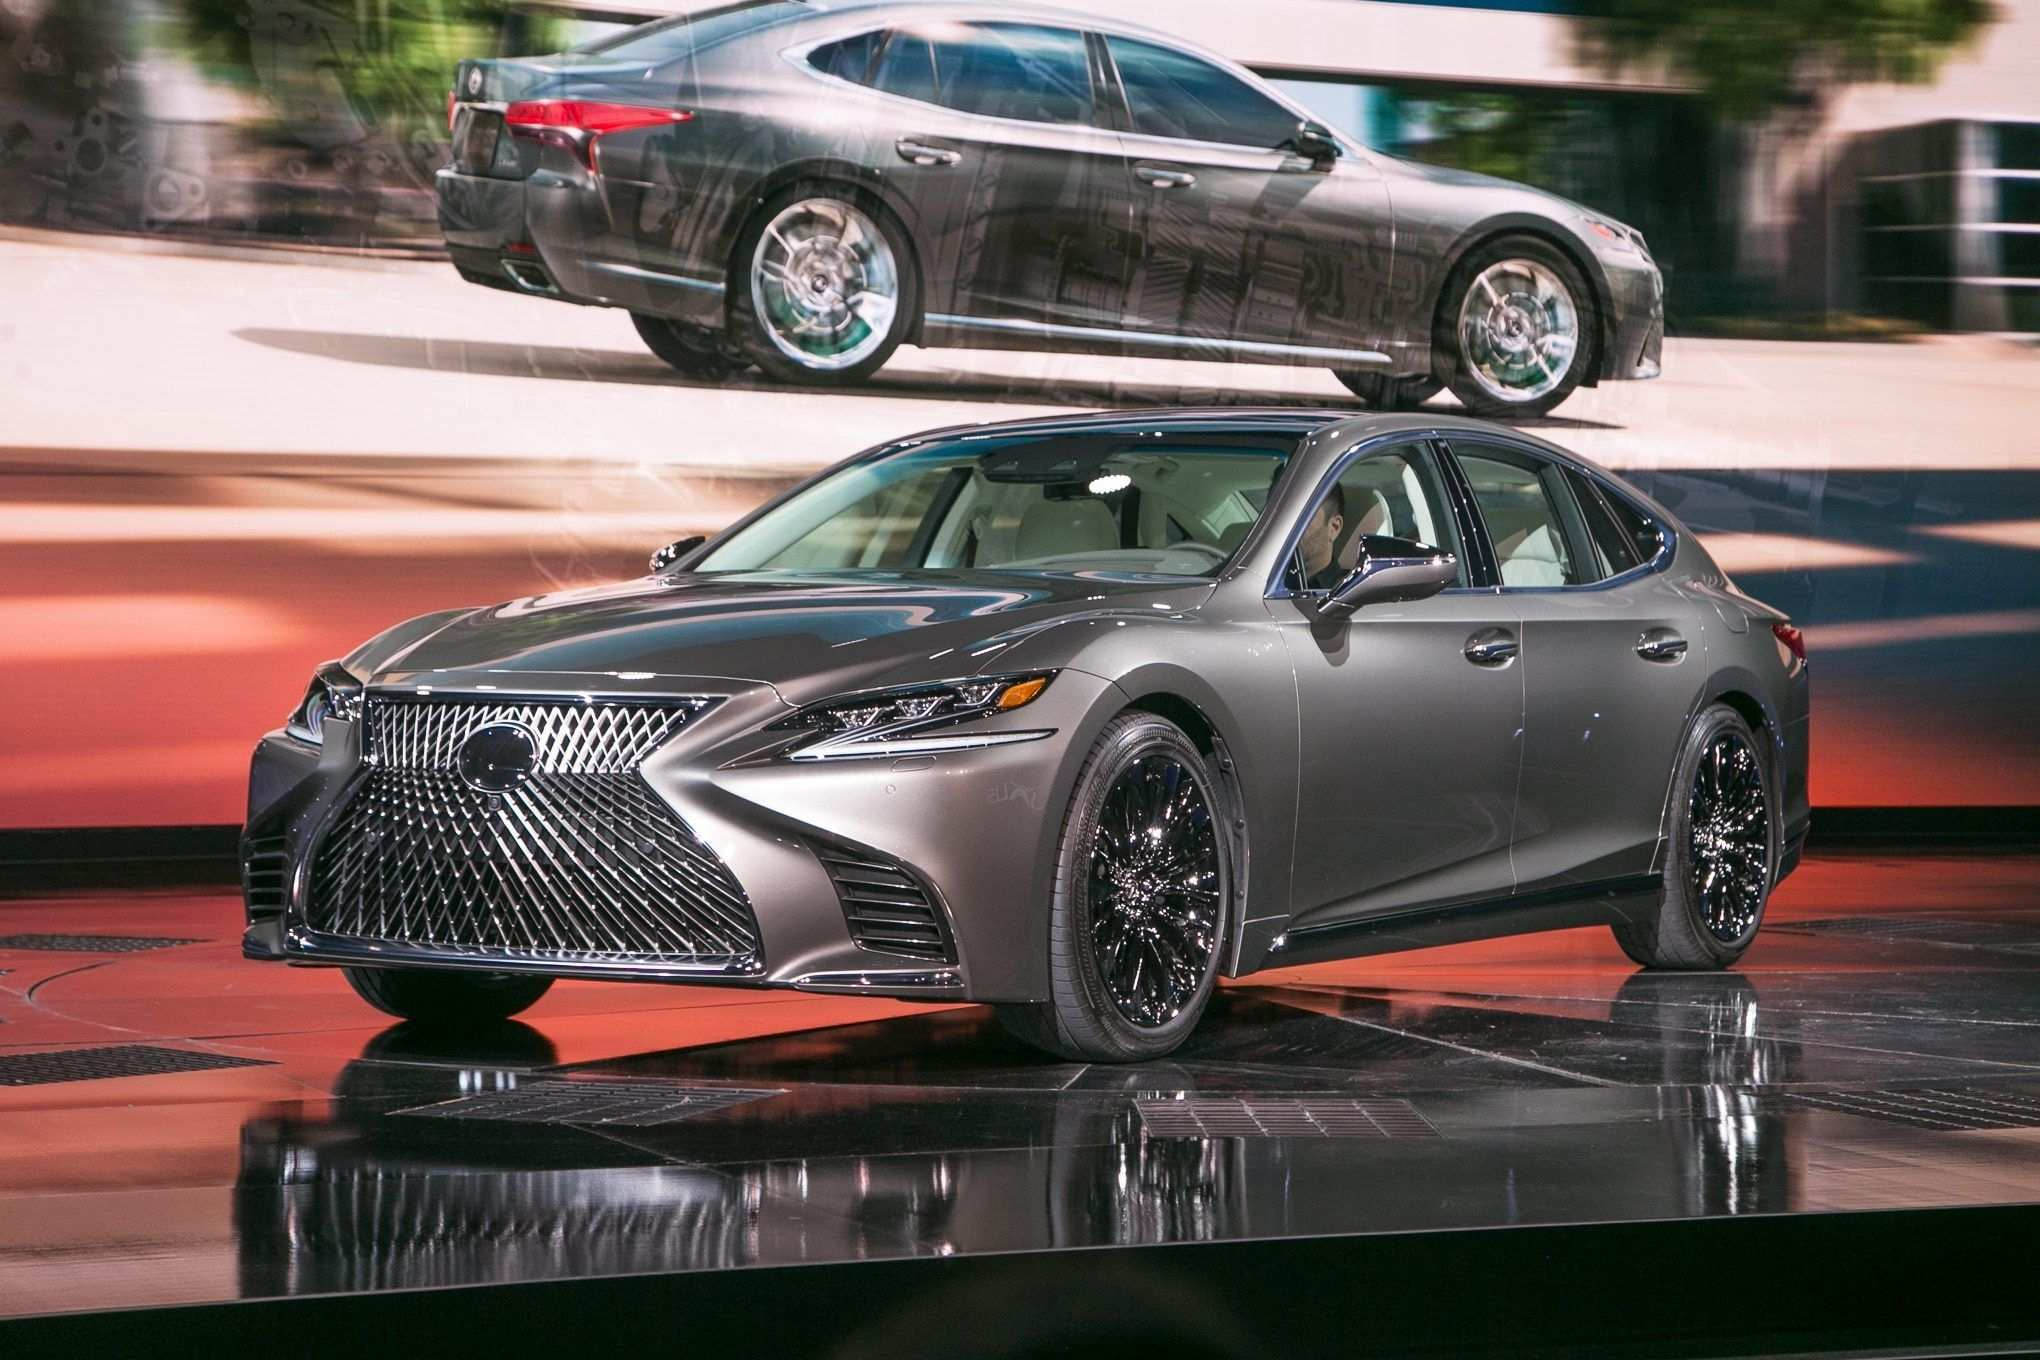 72 All New 2020 Lexus LS Specs with 2020 Lexus LS